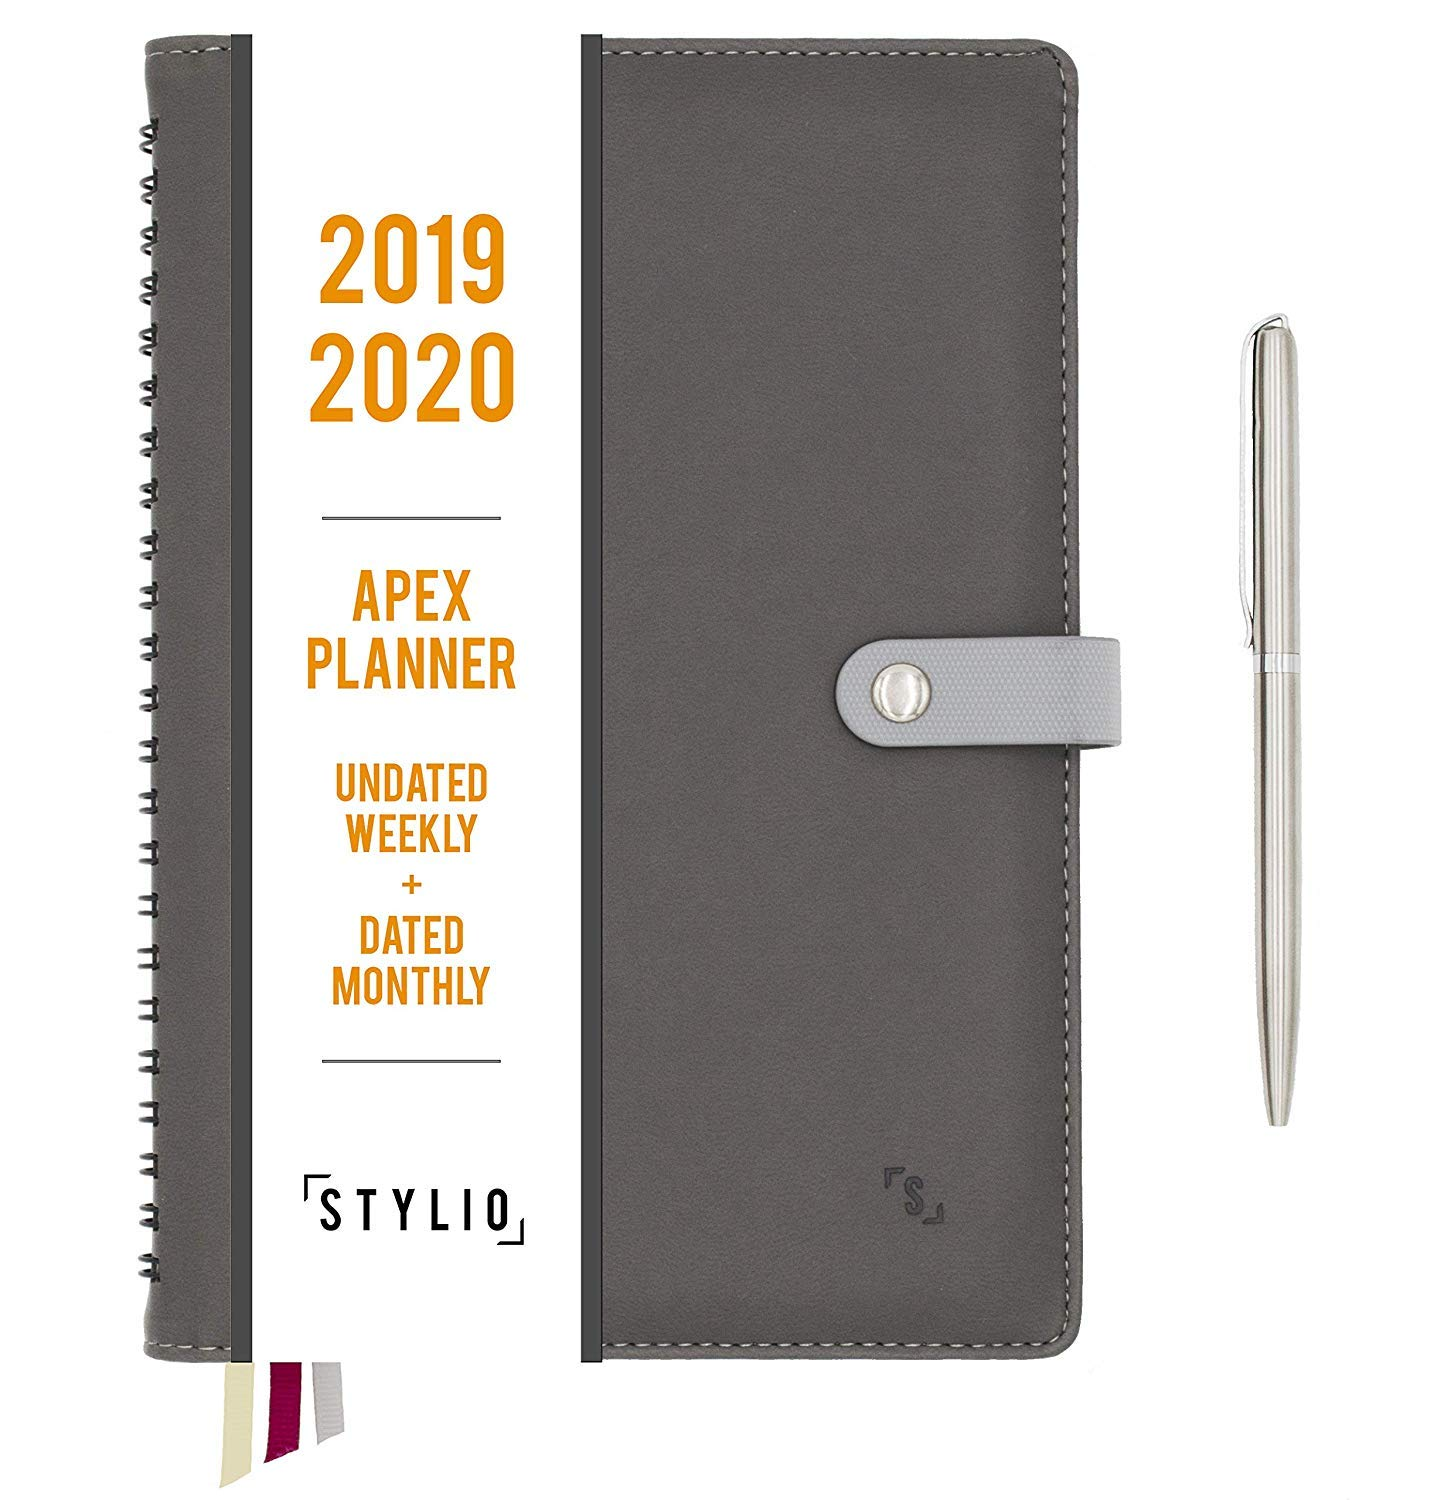 STYLIO Apex Planner 2019-2020. Undated Weekly, Dated Monthly Calendar Personal Agenda Organizer for Business/Academic/School Life. Daily Goals, Passion Journal Notebook for Teachers & College Students by Stylio